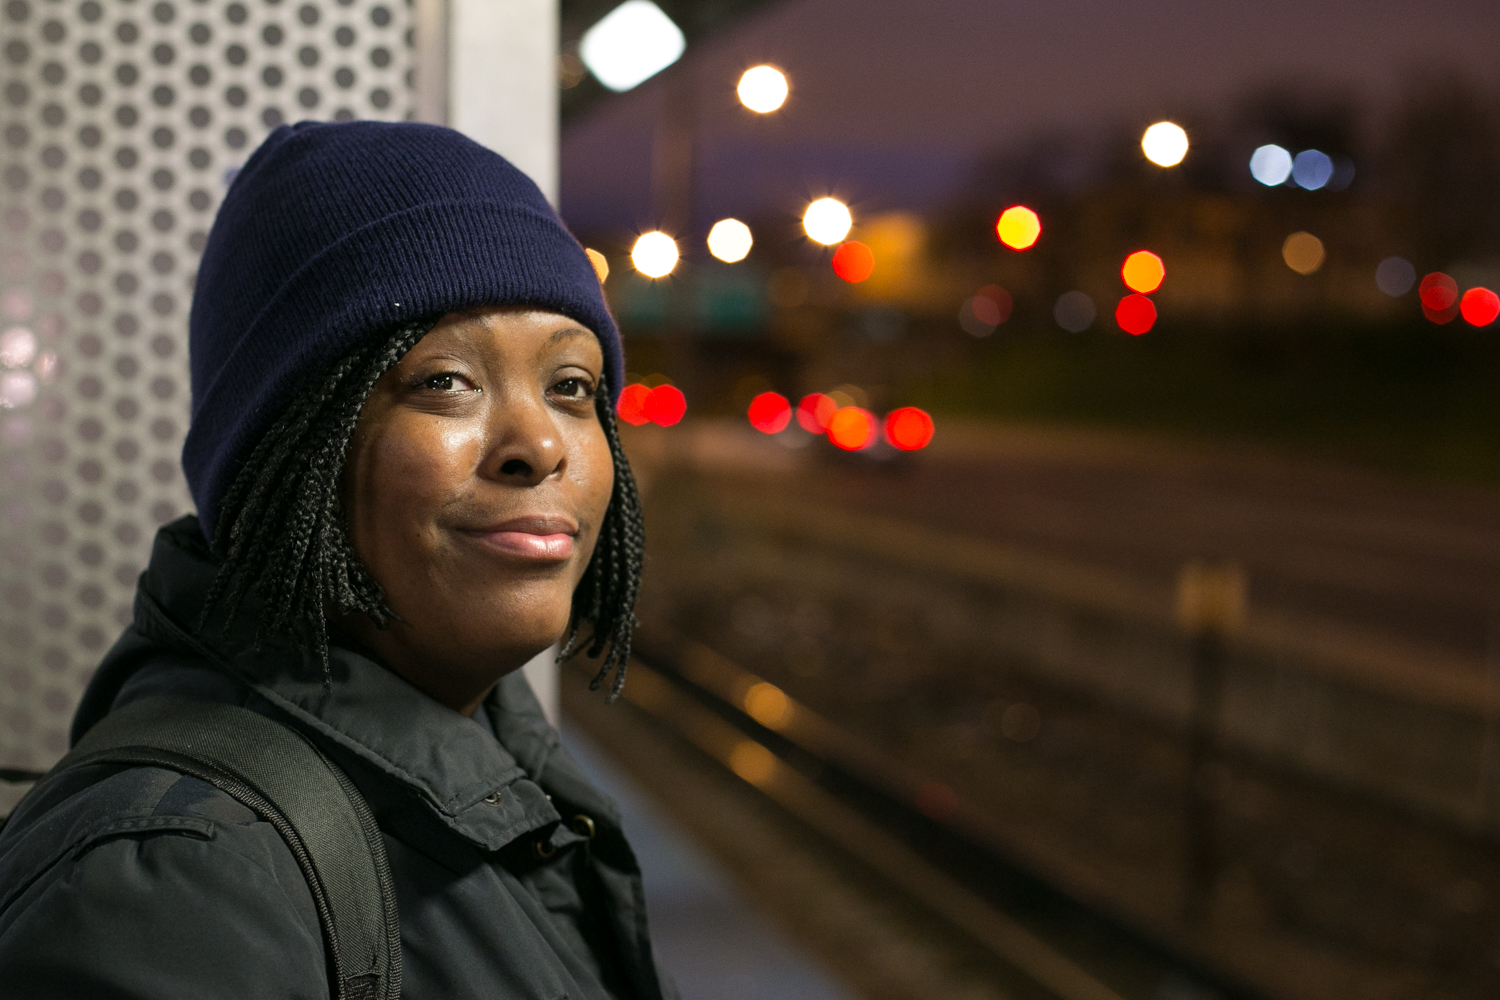 Shantae waits for the blue line train to take her out to Chicago O'Hare Airport where she has been a screener for the past 10 years with TSA. 20/24